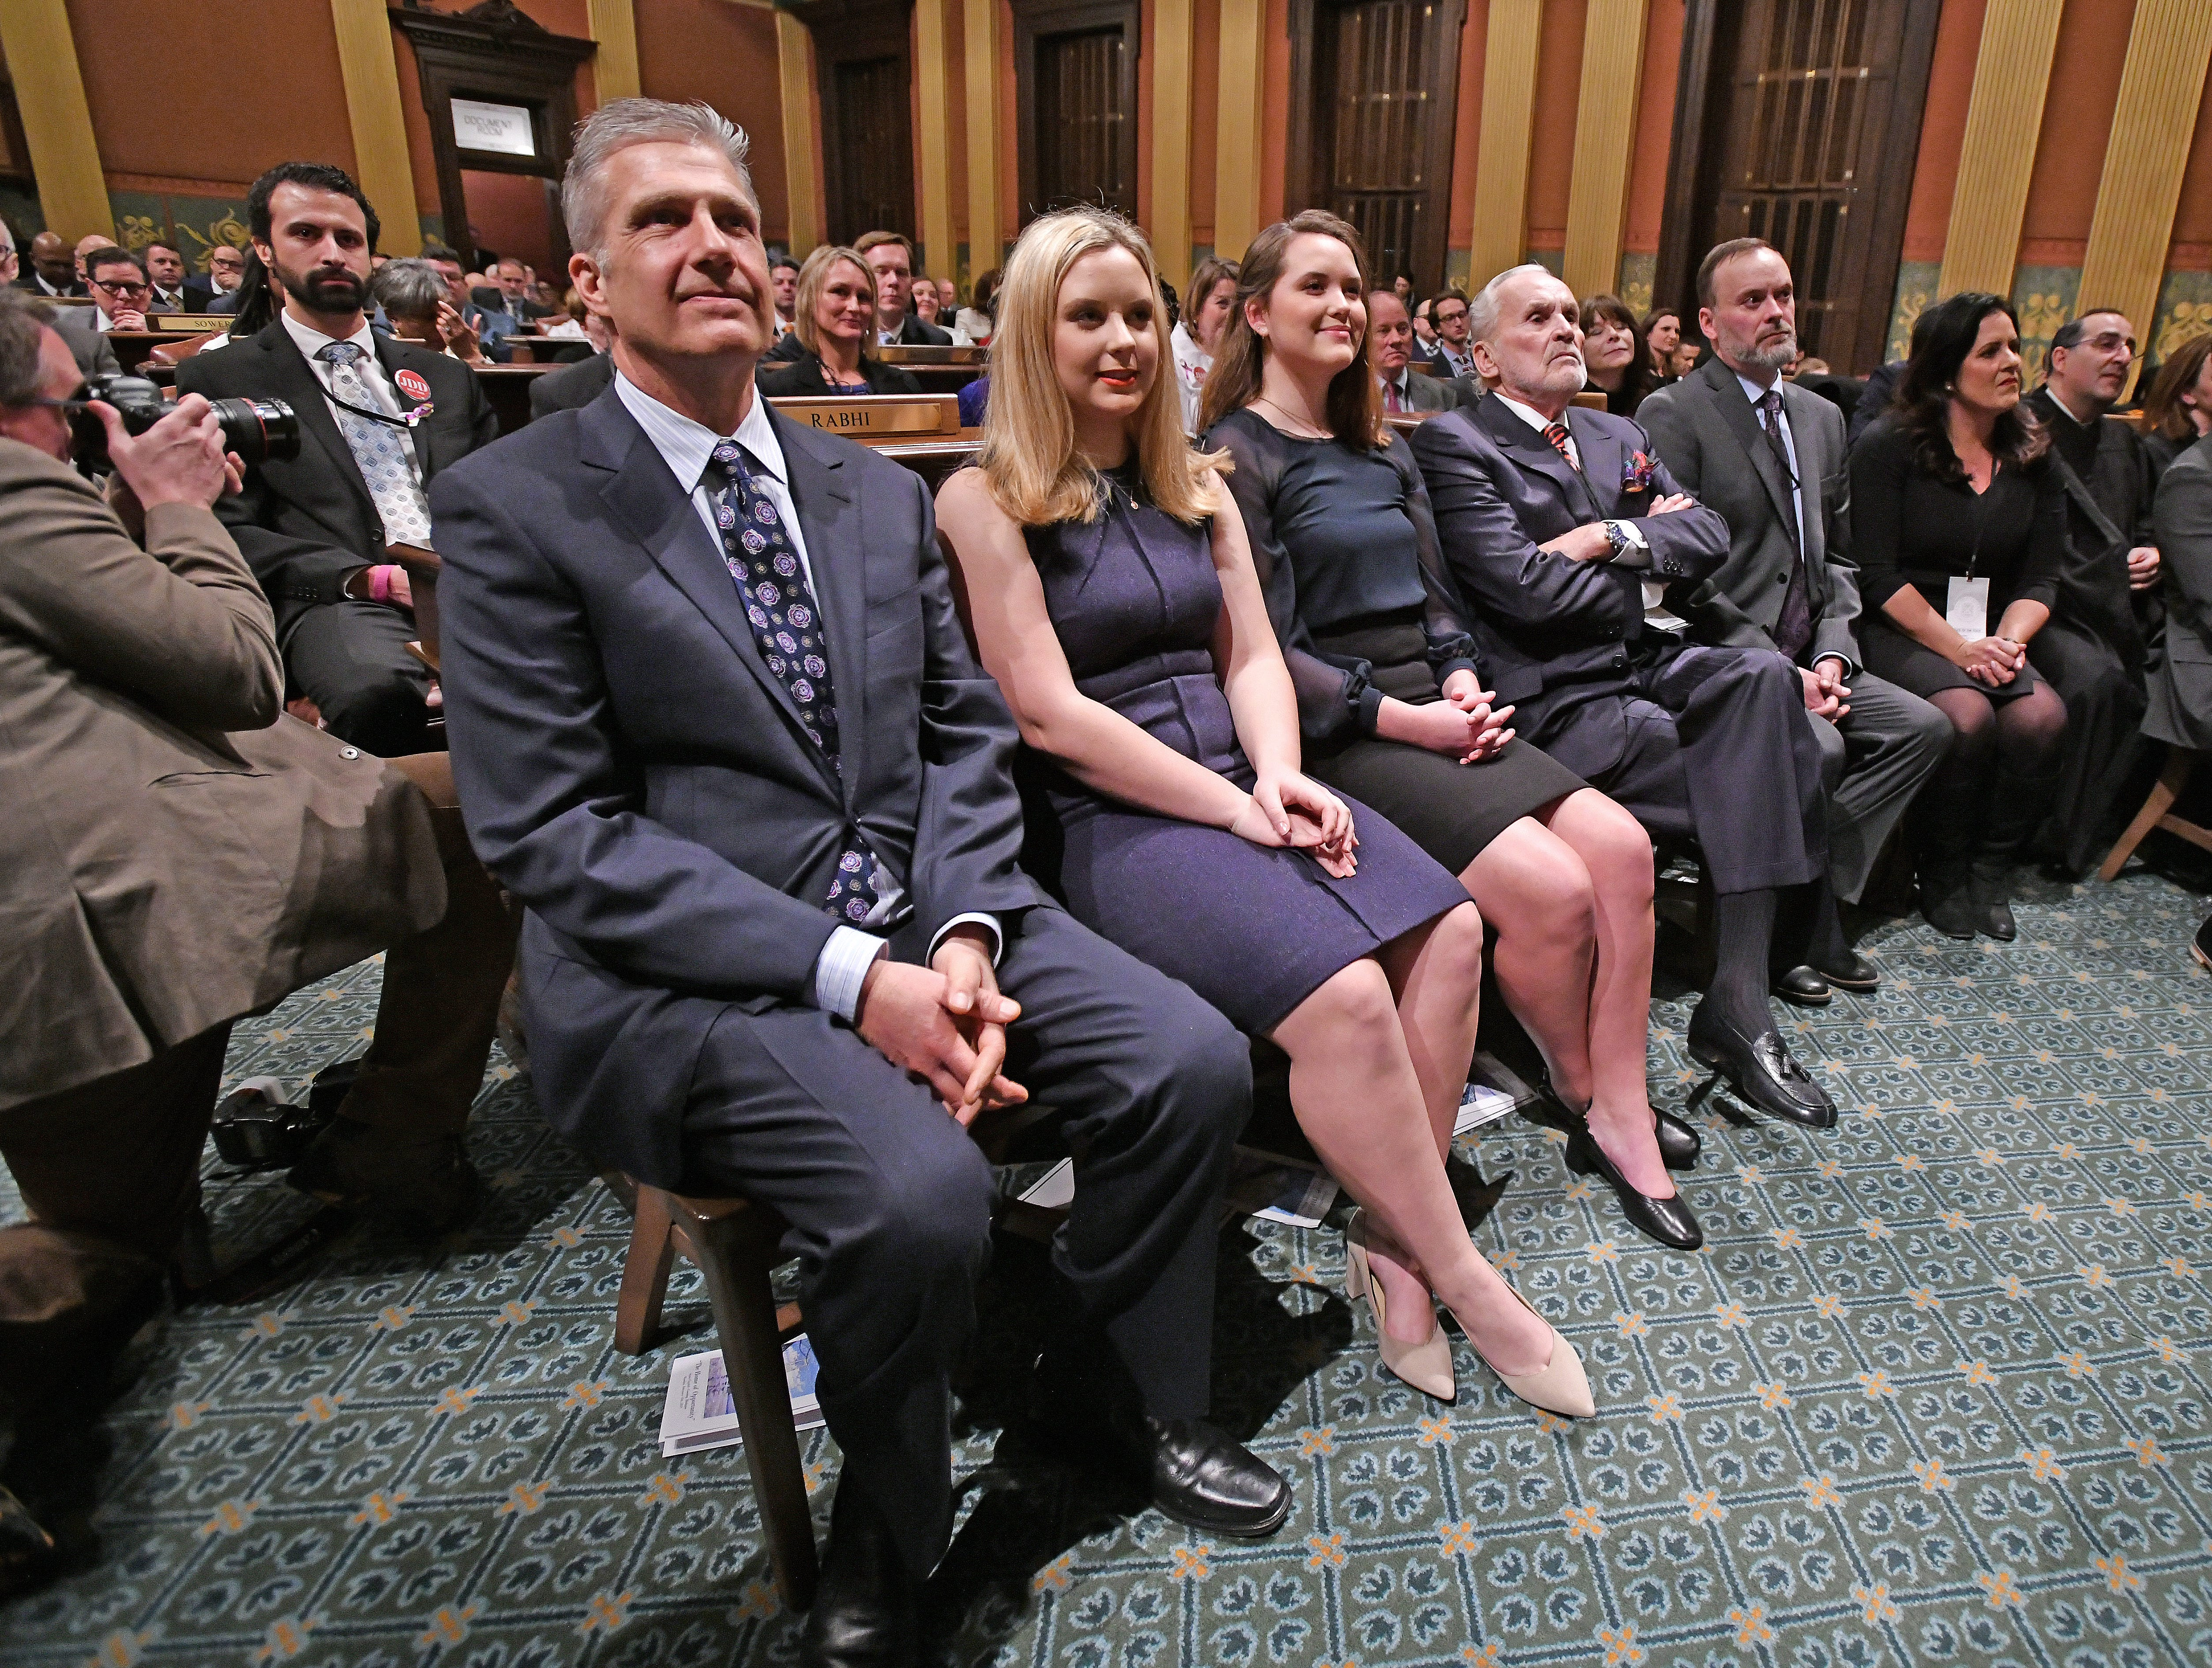 Gov. Gretchen Whitmer's husband, Dr. Marc Mallory, and daughters Sherry Schrewsbury and Sydney Schrewsbury listen to her State of the State speech.